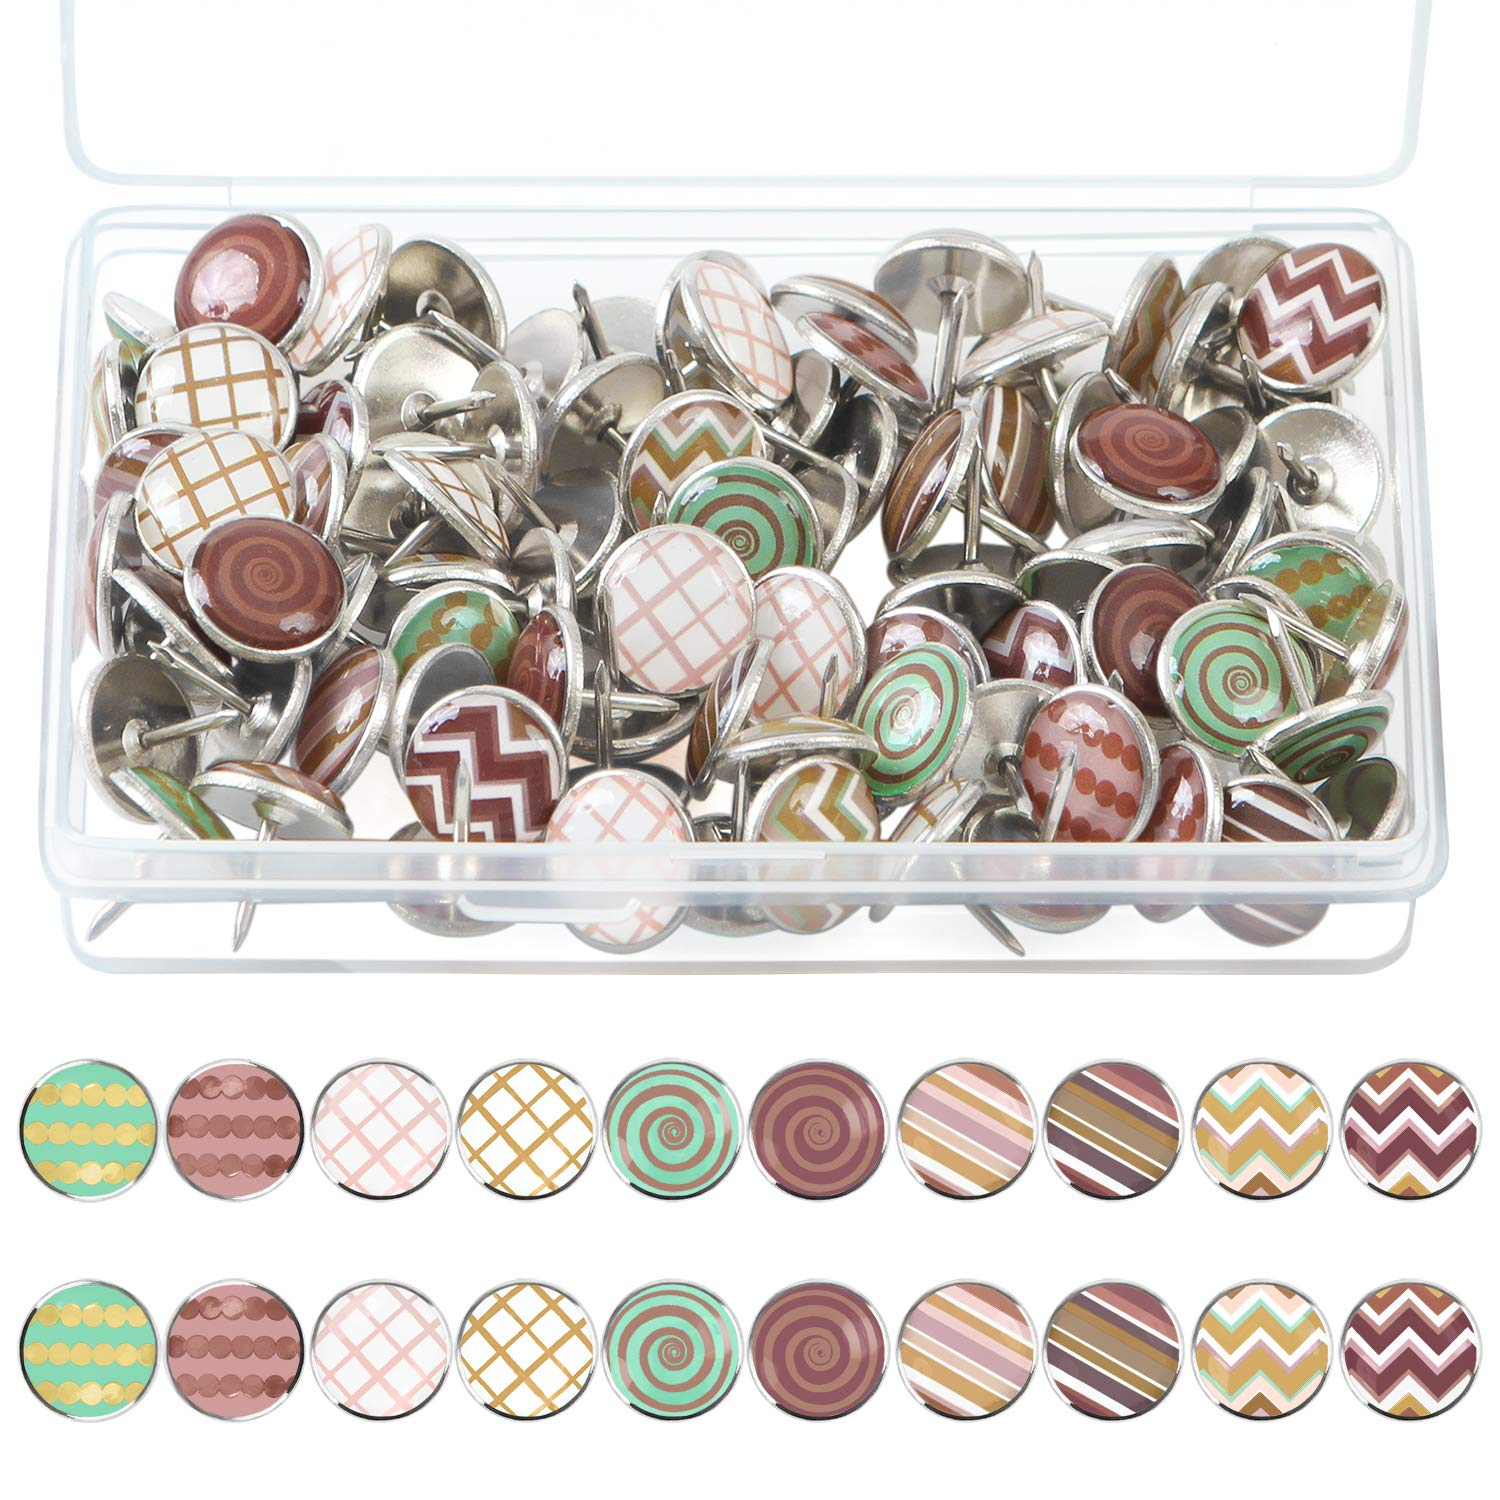 Elcoho 100 Pieces Creative and Fashionable Steel Push Pins Decorative Thumbtacks for Wall Maps, Photos, Bulletin Board or Cork Boards,10 Different Patterns